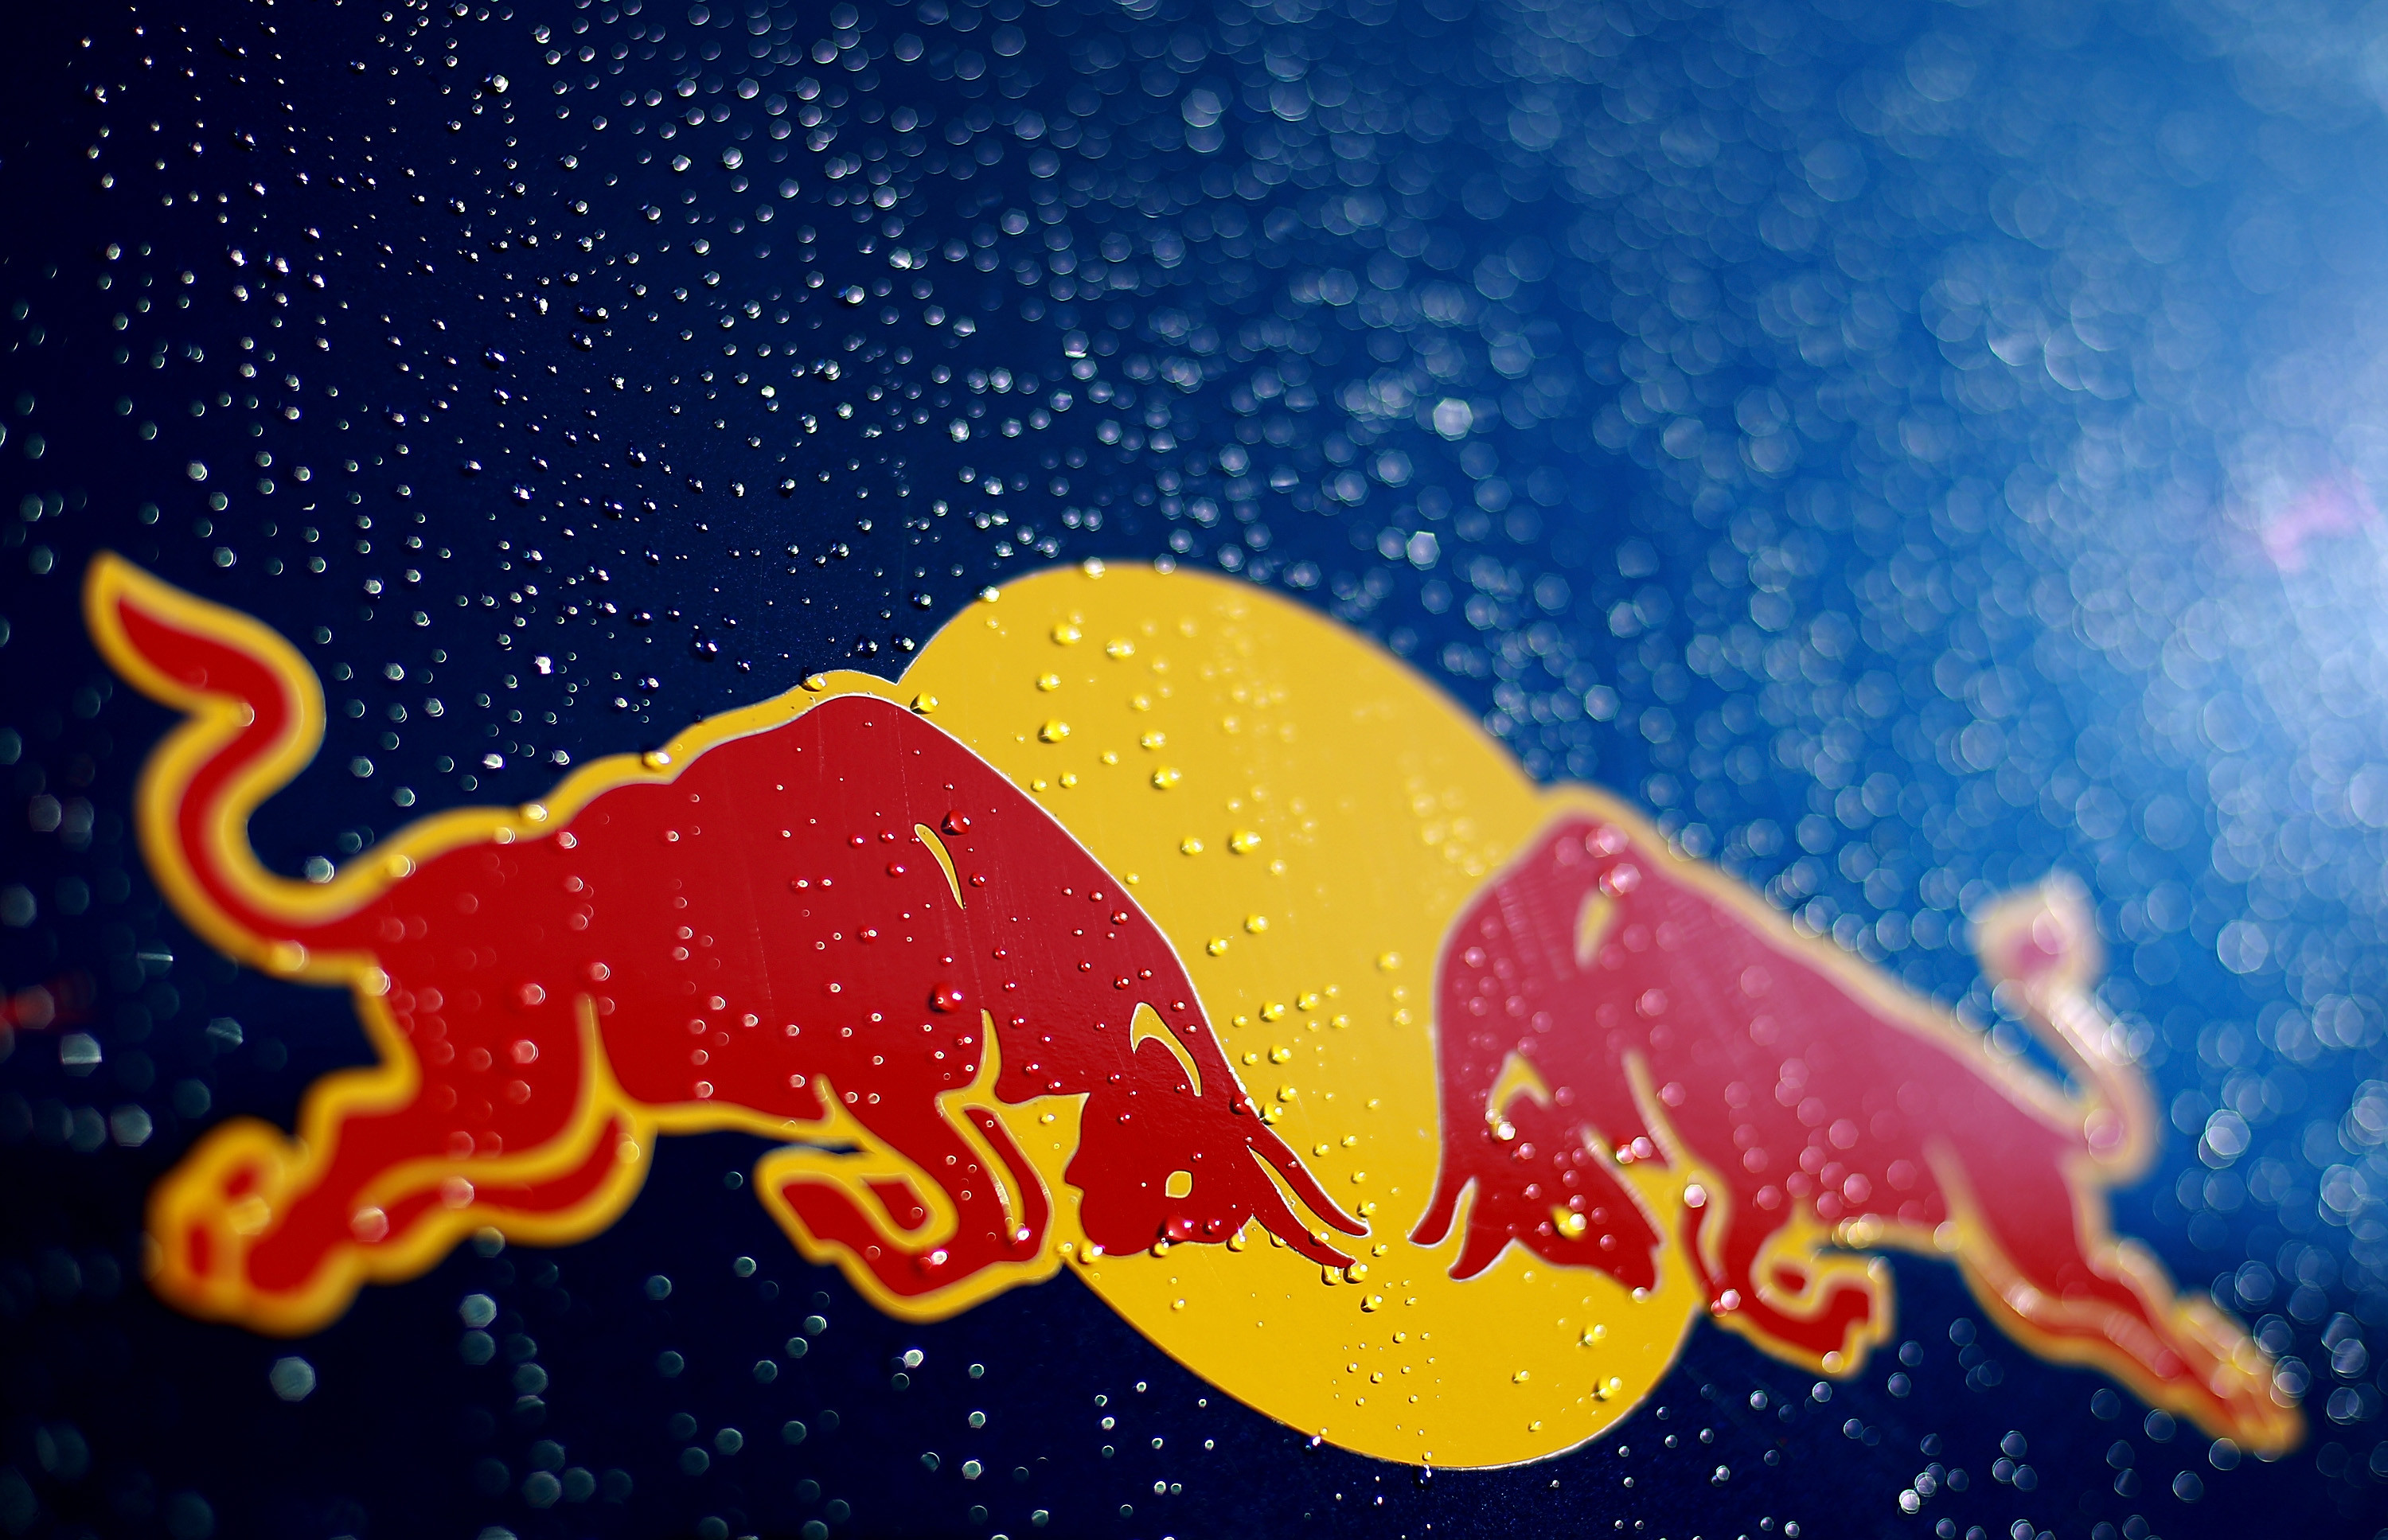 Red Bull Wallpaper 69 Images